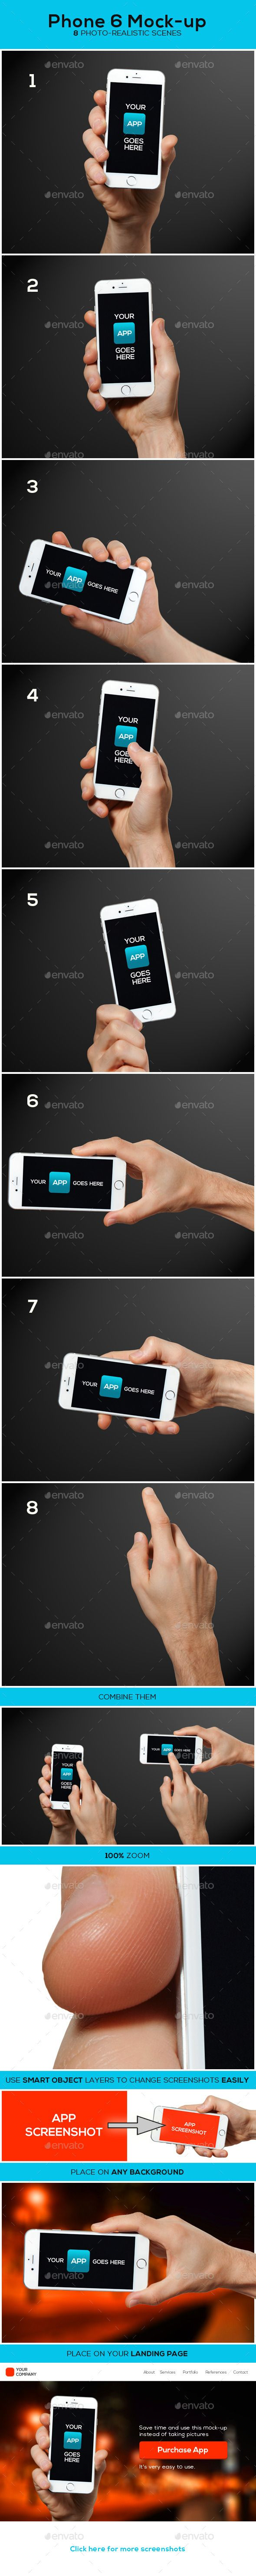 Phone 6 Mockup — Photoshop PSD #present #psd • Available here → https://graphicriver.net/item/phone-6-mockup/9325561?ref=pxcr